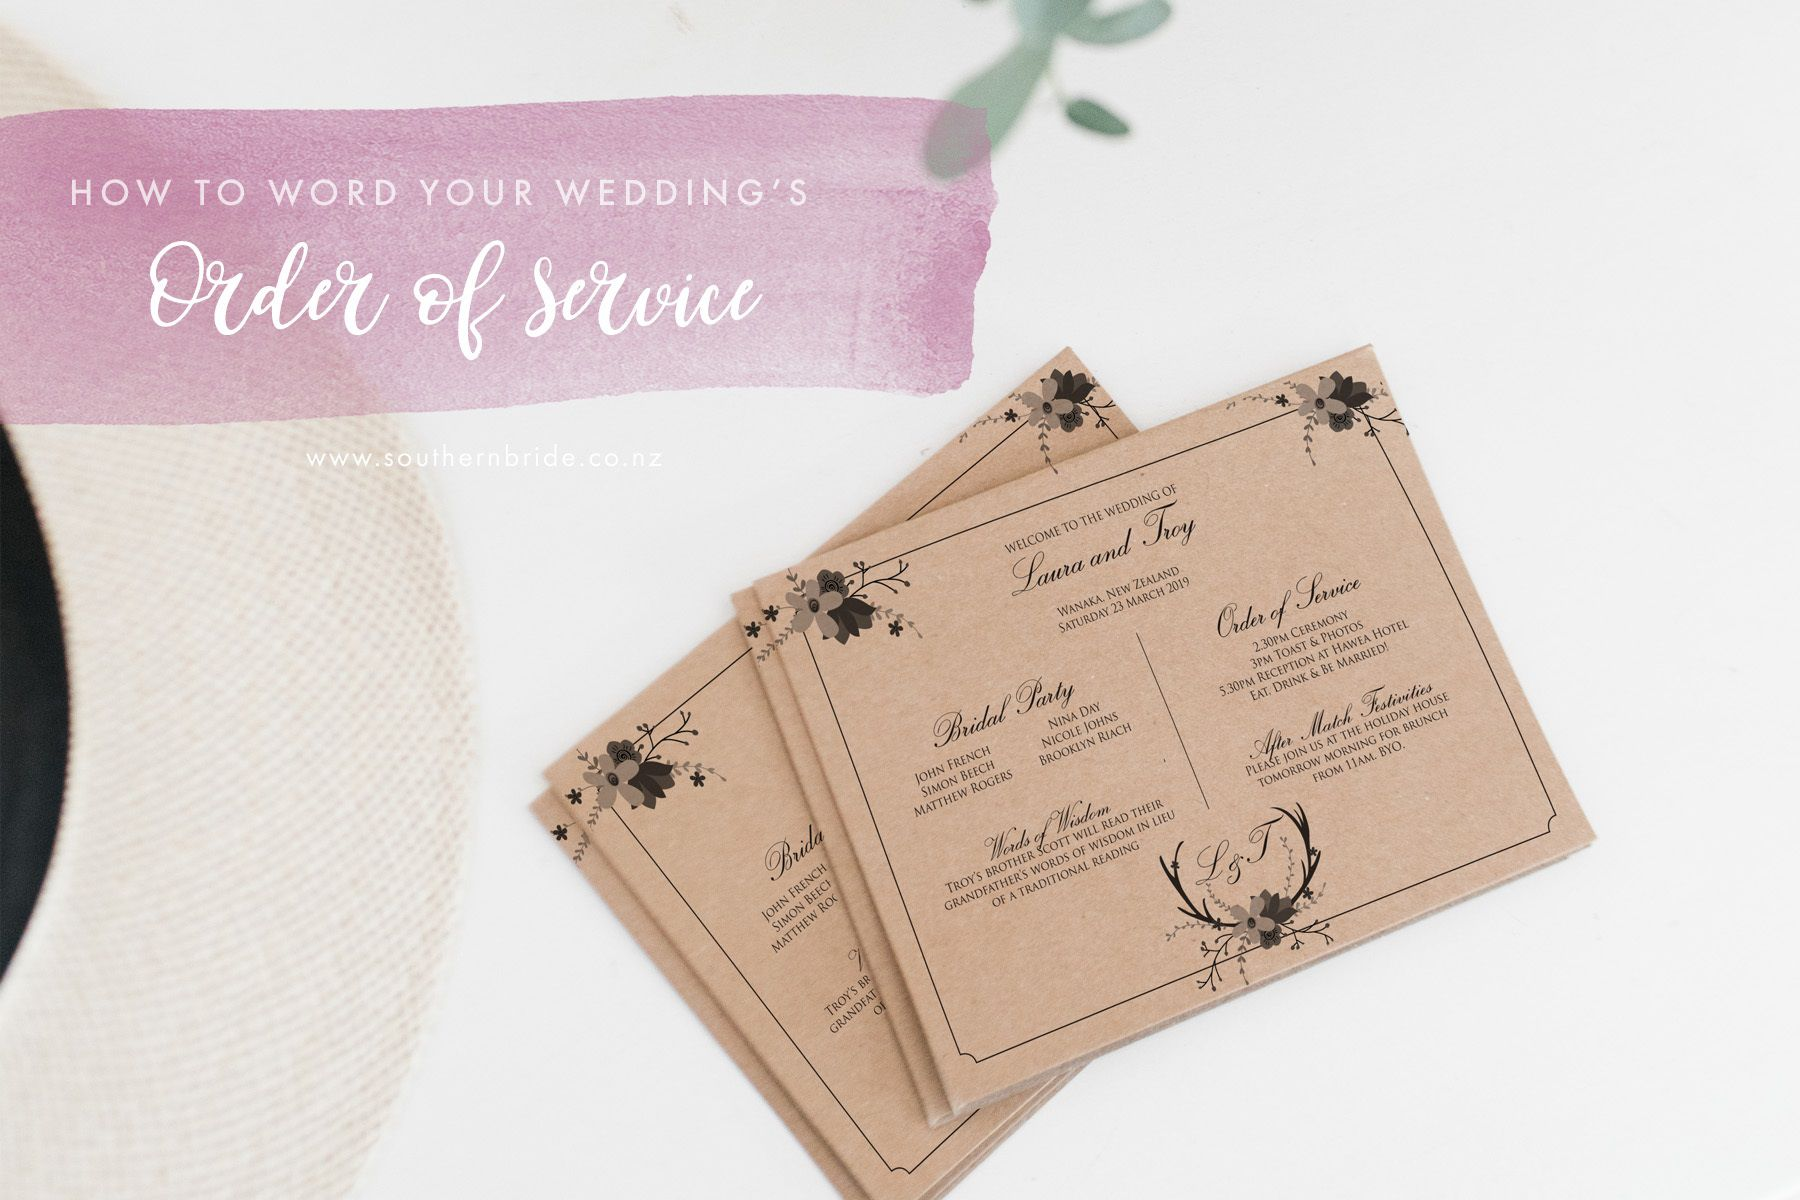 006 Simple Church Wedding Order Of Service Template Uk Photo Full